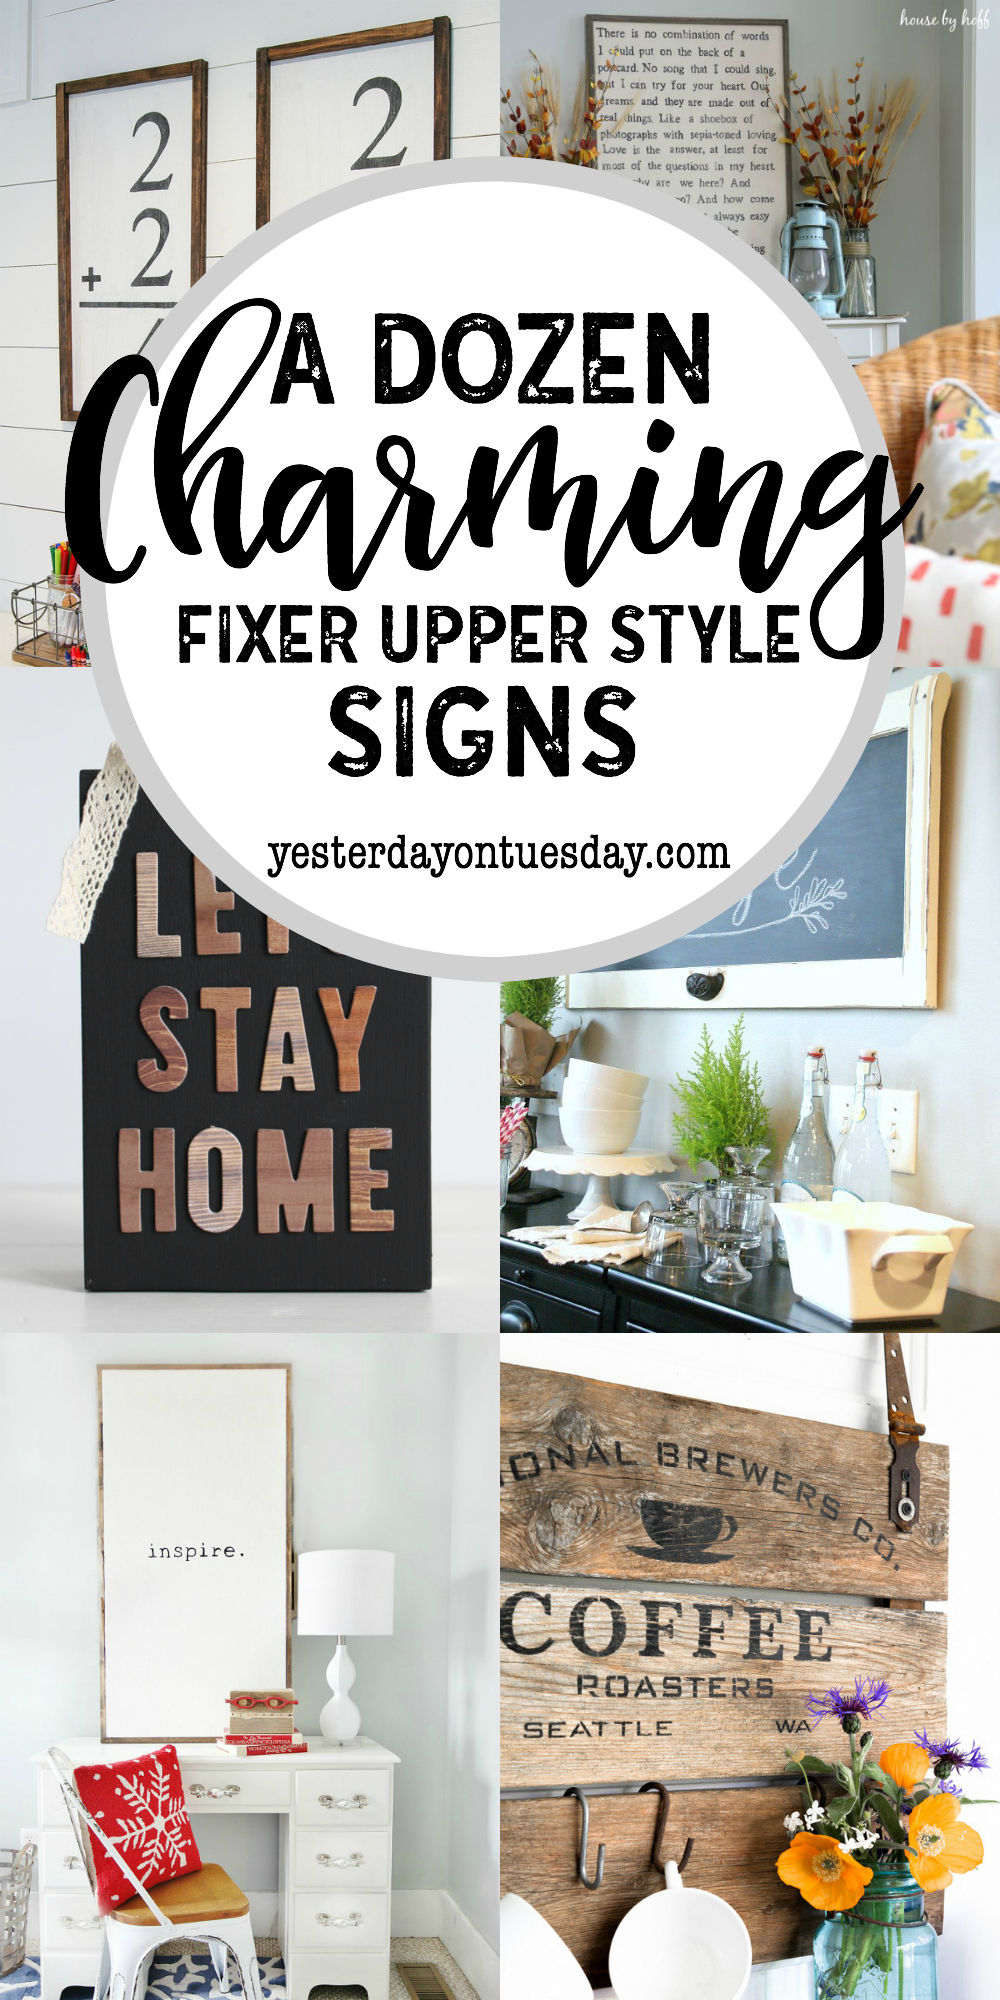 A Dozen Charming Fixer Upper Style Signs: Great DIY signs to make for your home.